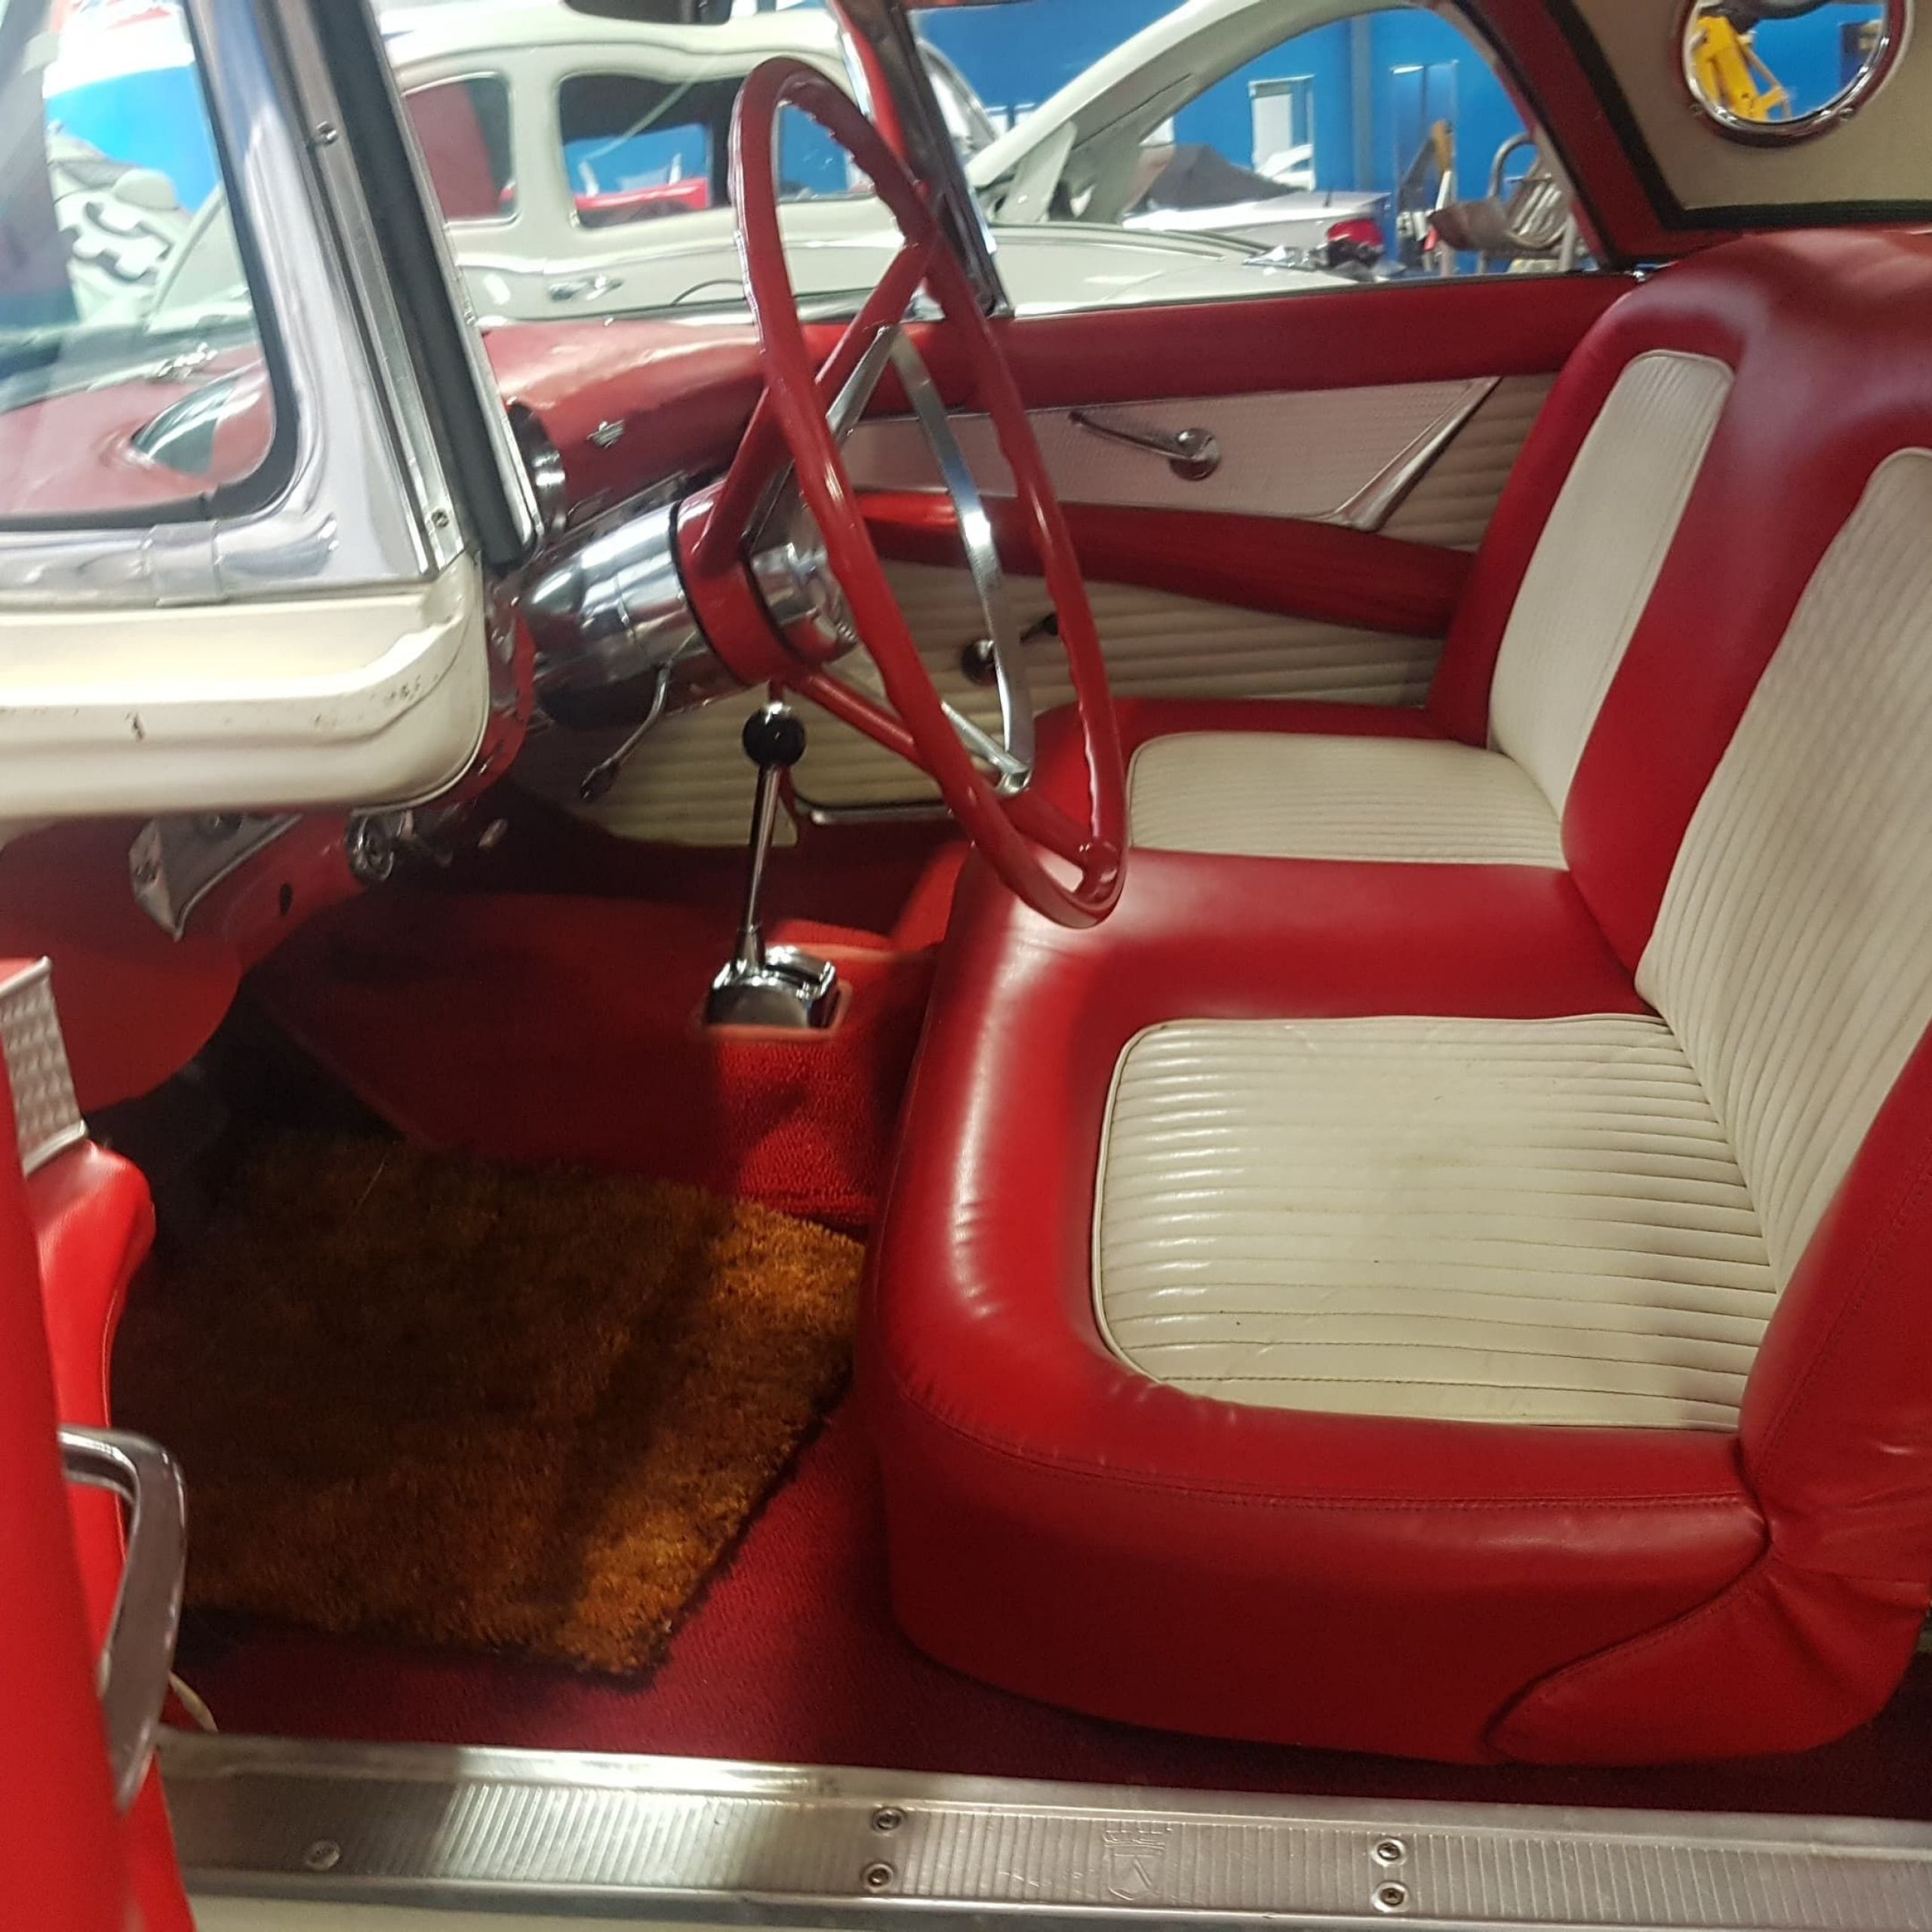 2 Door Cars for Sale Near Me Unique 1955 ford Thunderbird Auto $85 000 Cars